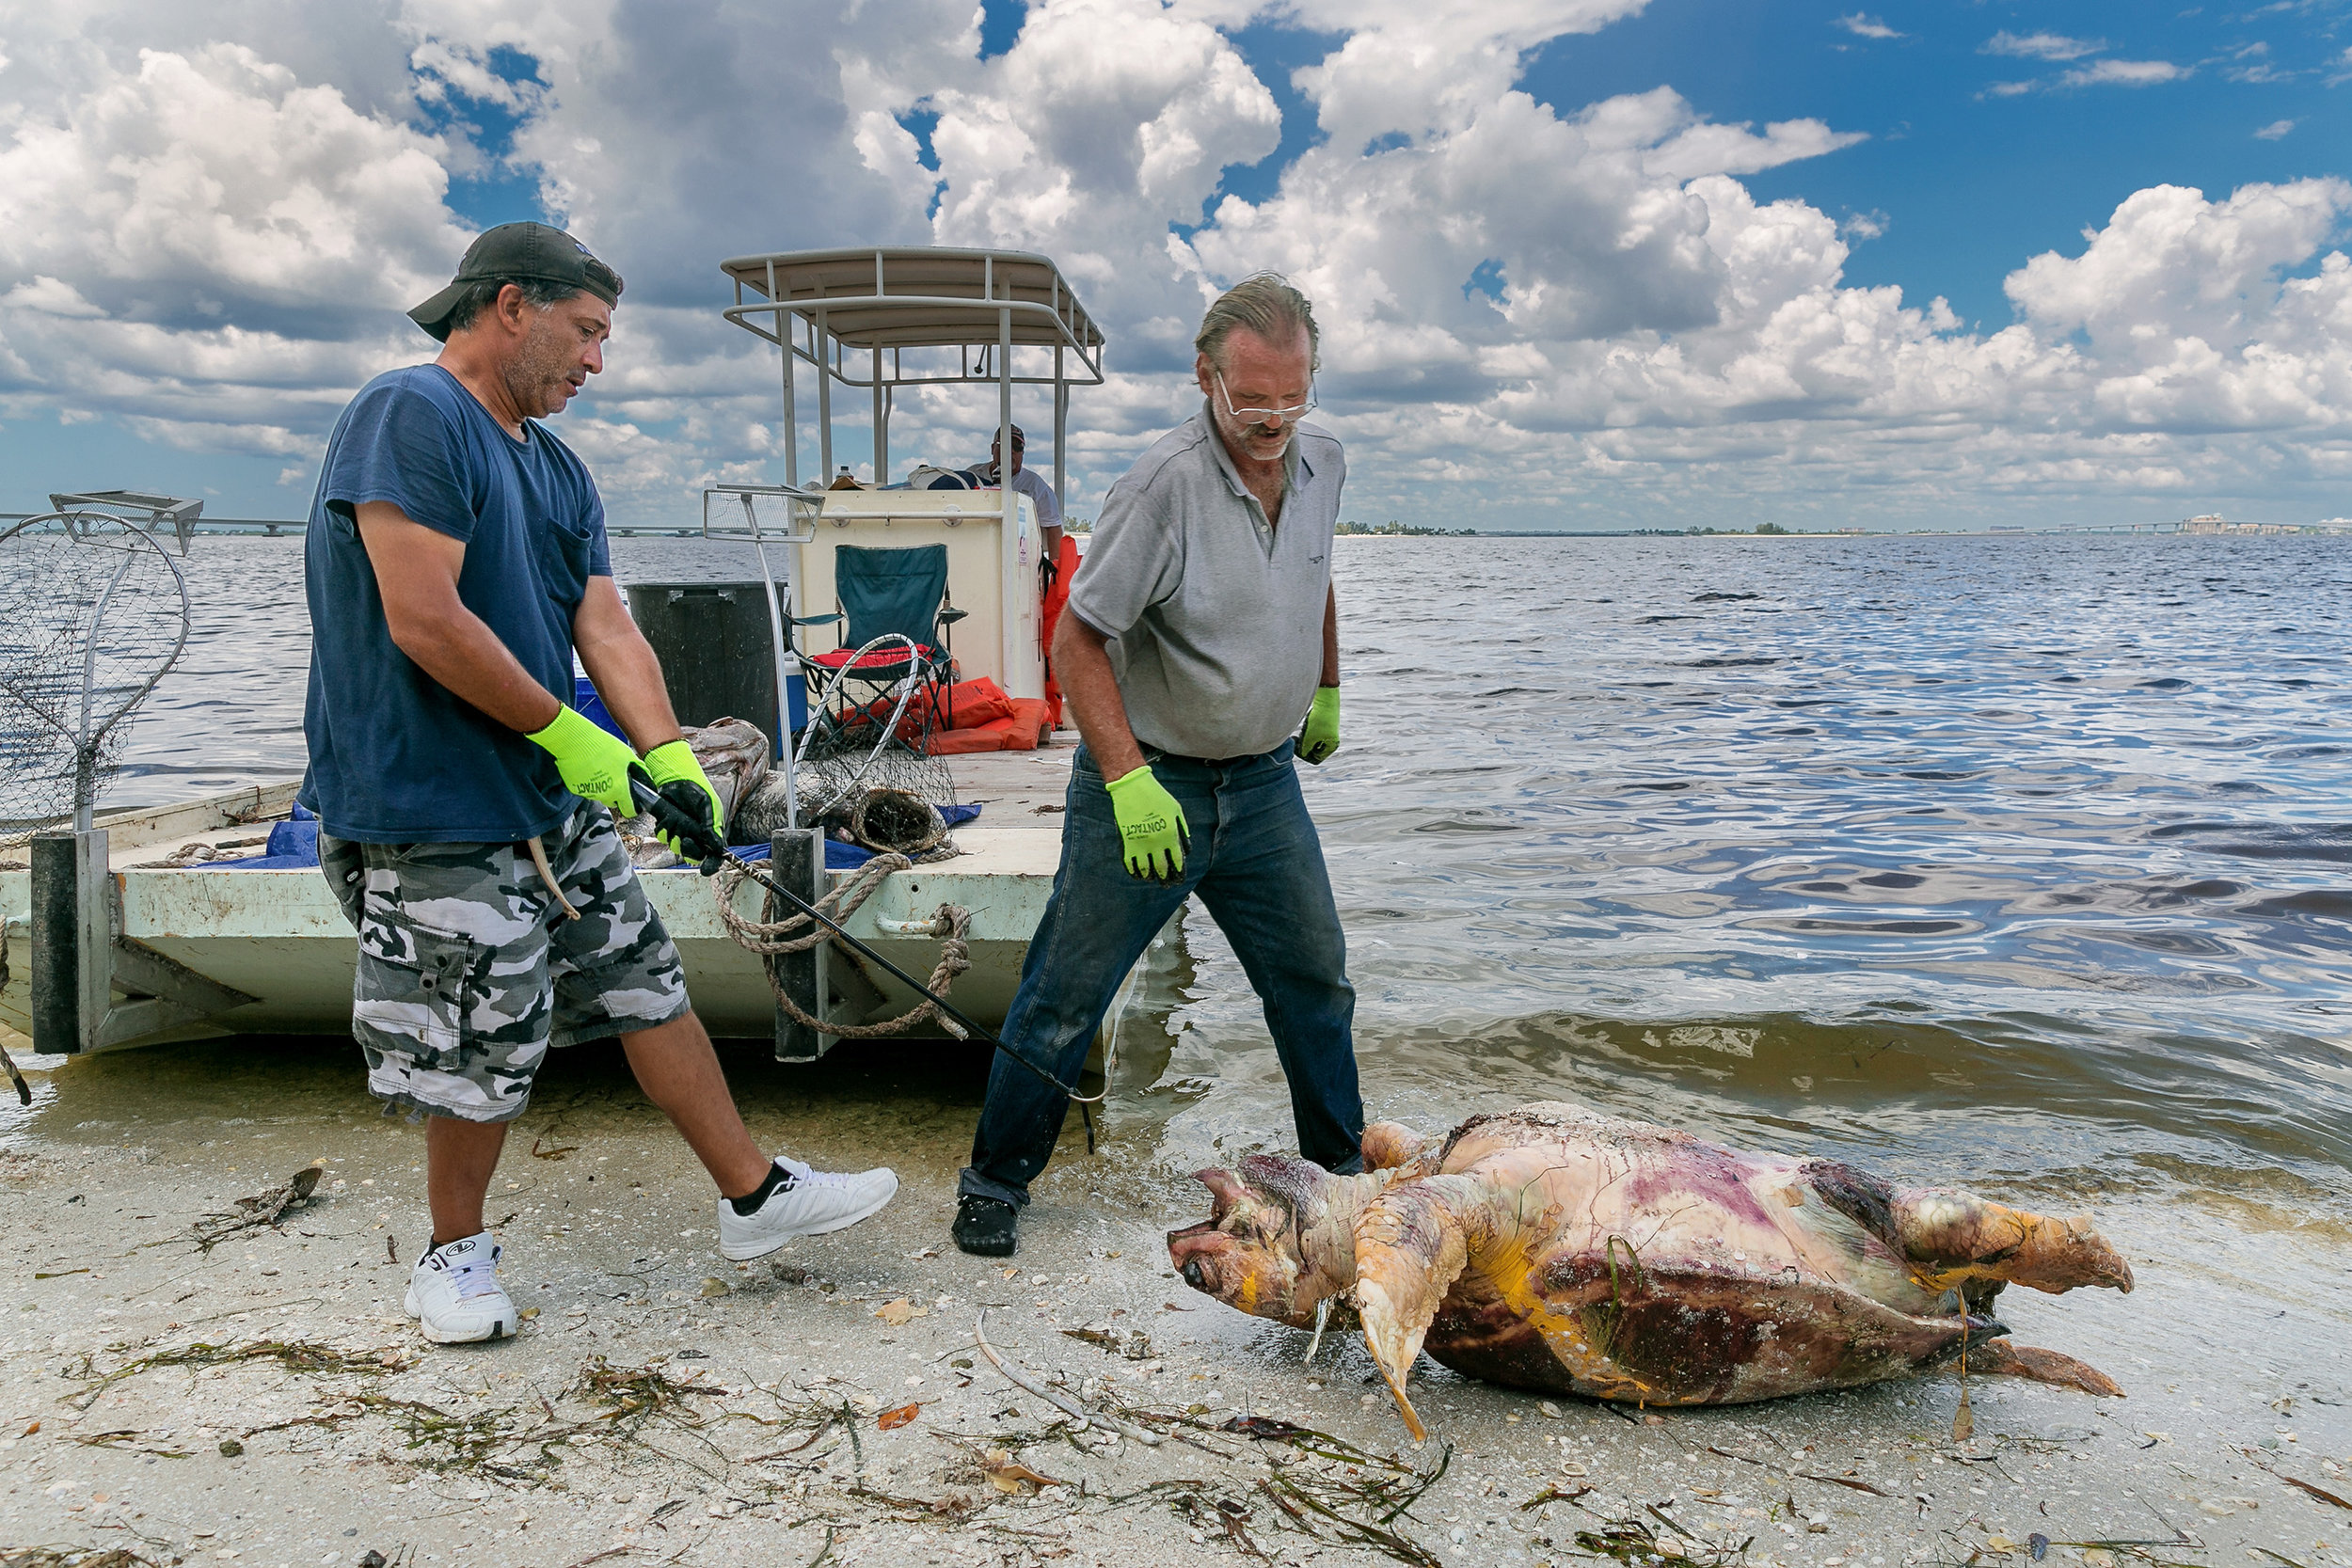 Workers prepare to pick up a dead loggerhead turtle in Sanibel, Florida, U.S.A., in August 2018. © GREG LOVETT /  PALM BEACH POST